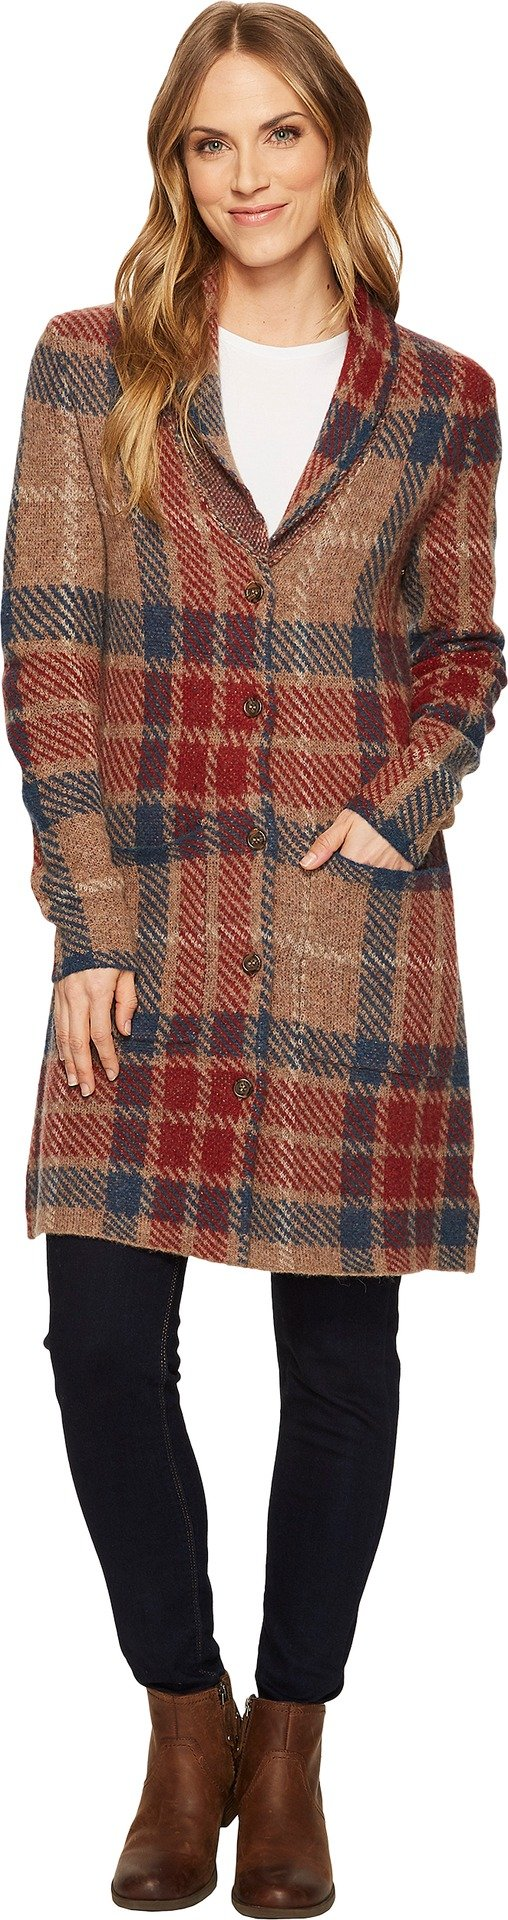 Toad&Co Women's Lennox Cardigan Chai Large by Toad&Co